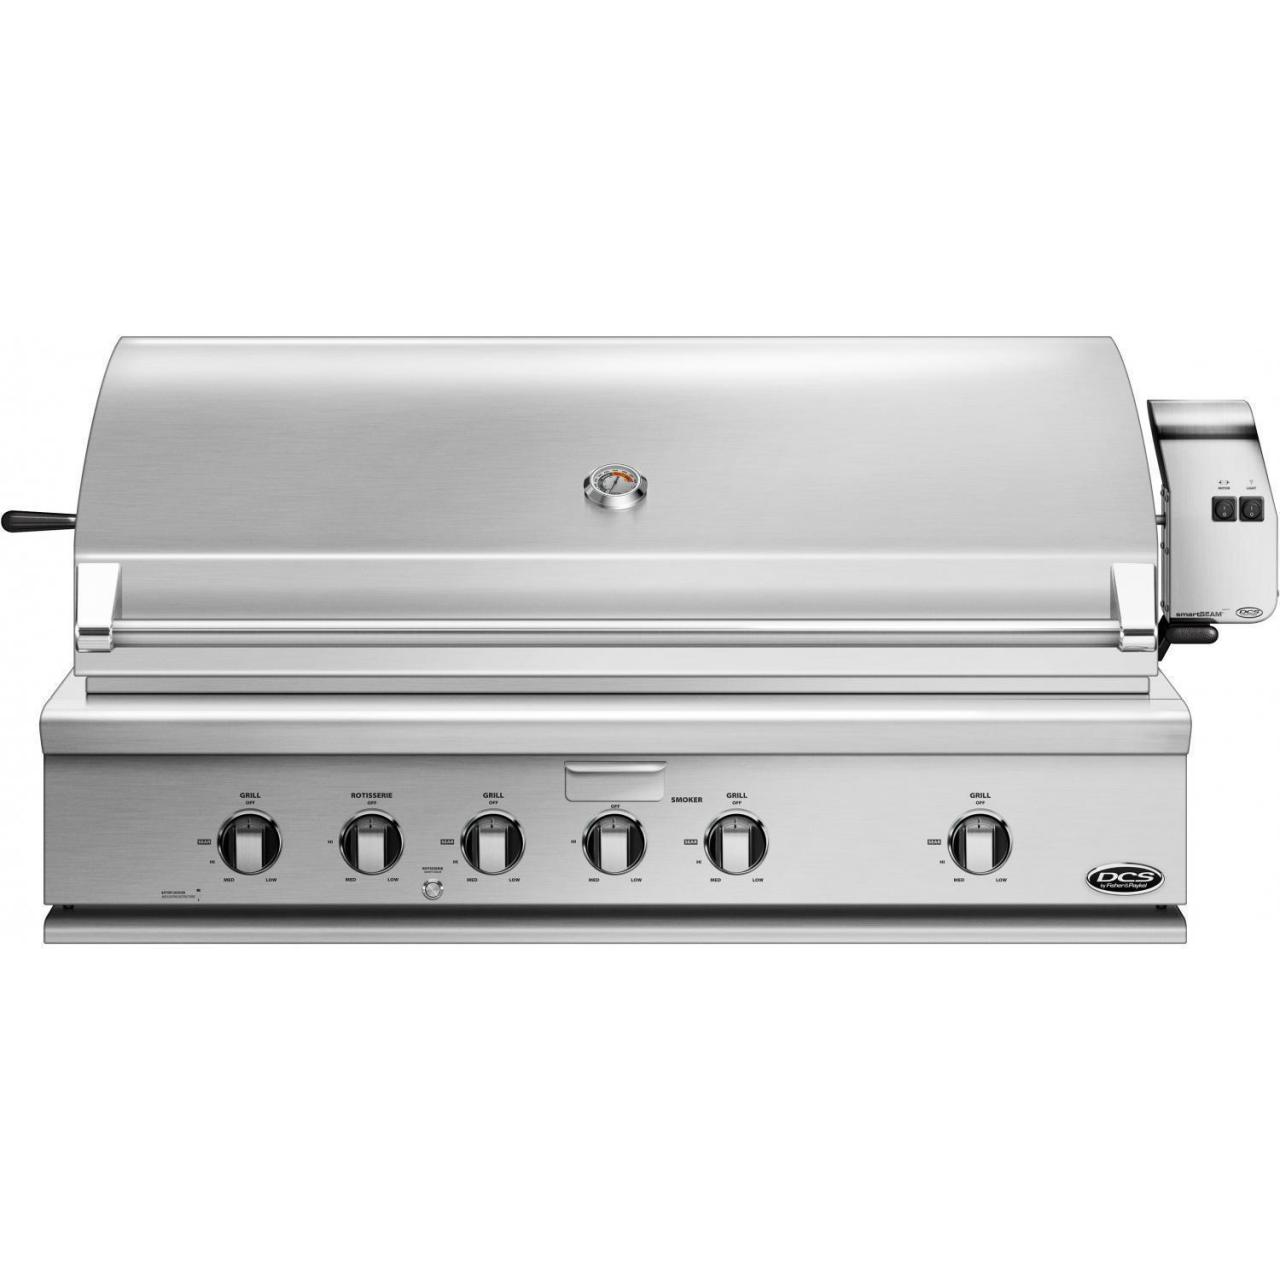 Lion 40-Inch Built-In Gas Grill - L90000 Stainless Steel Natural Gas